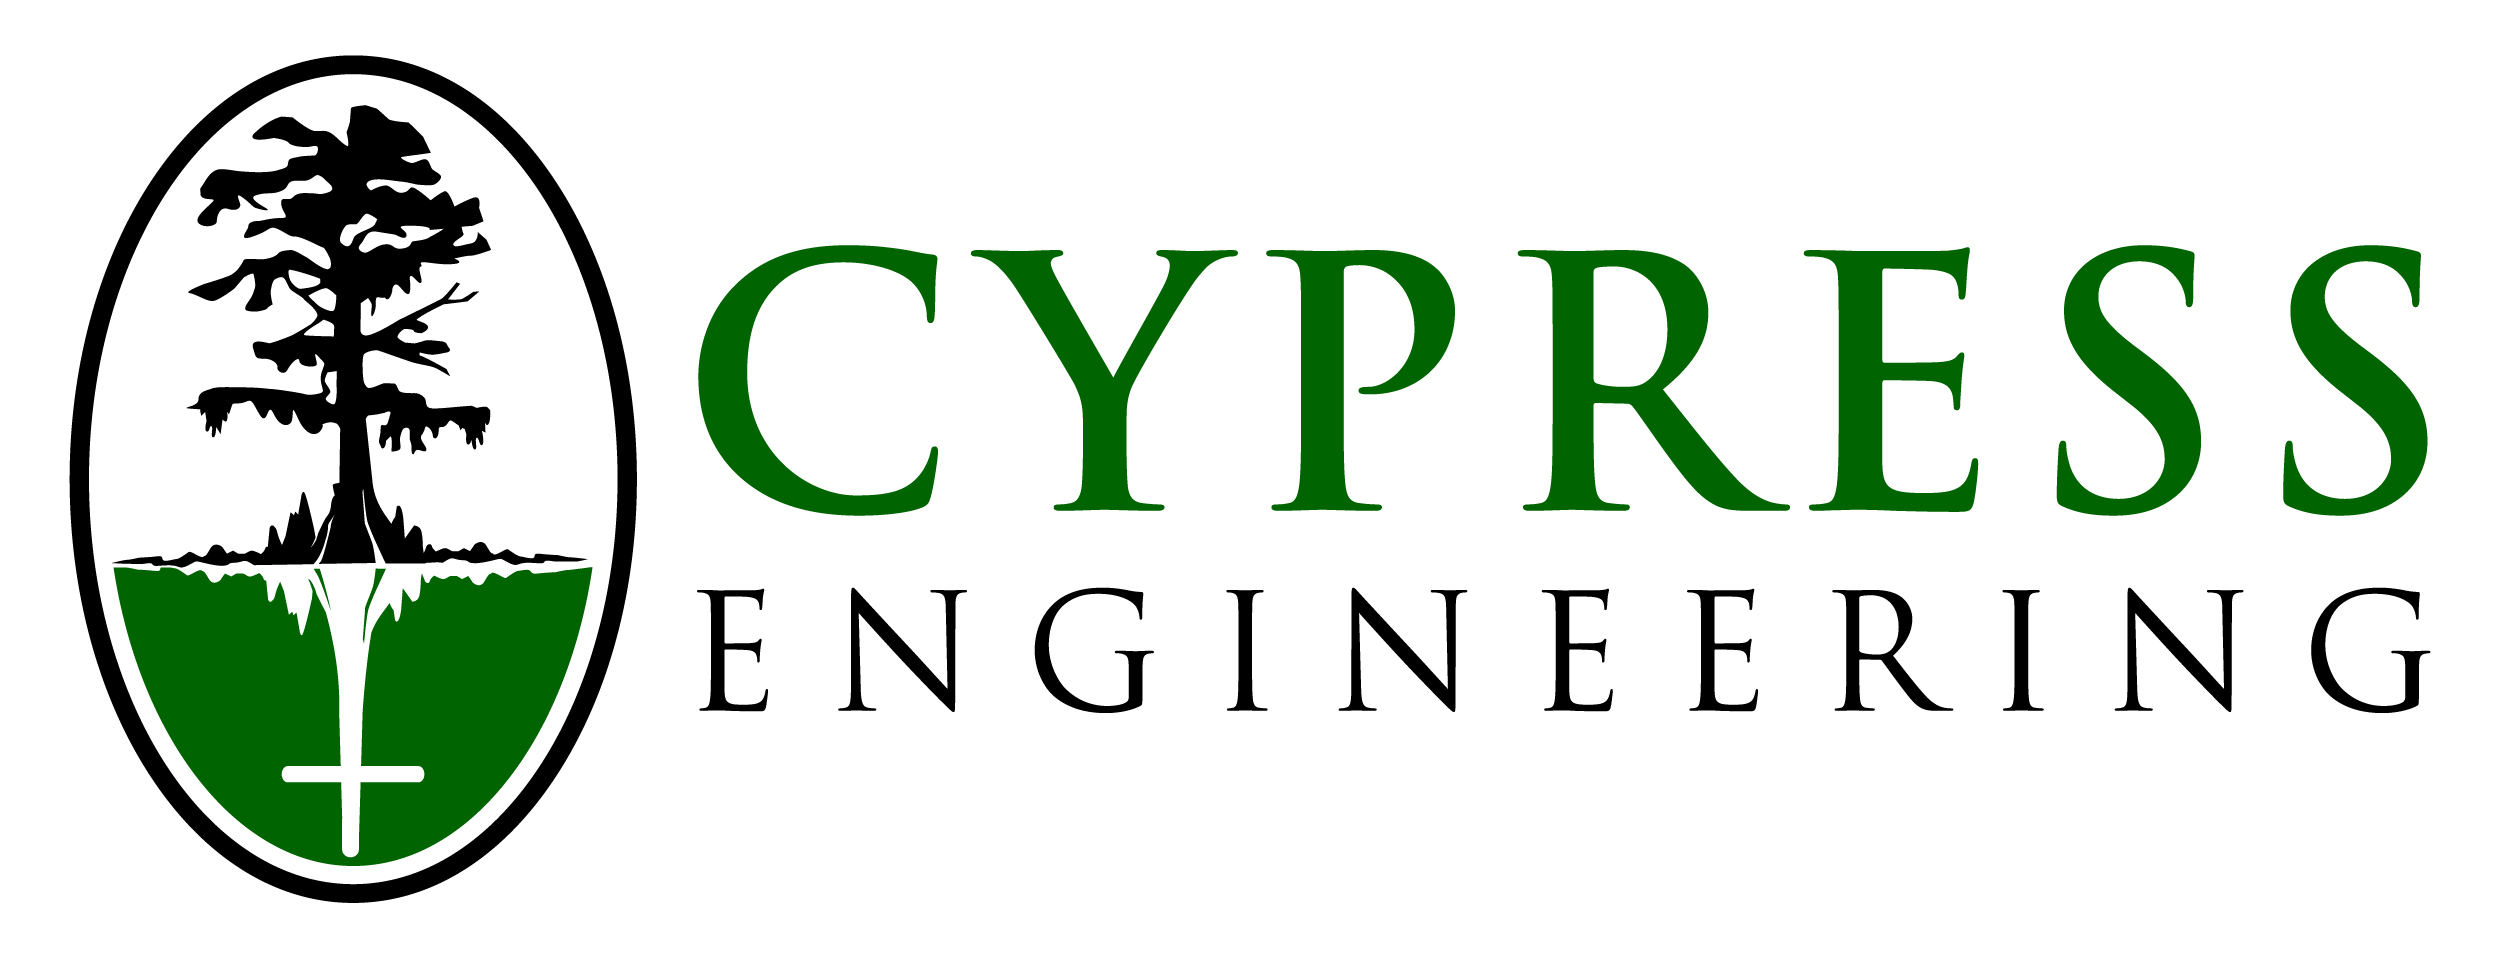 Cypress engineering 01